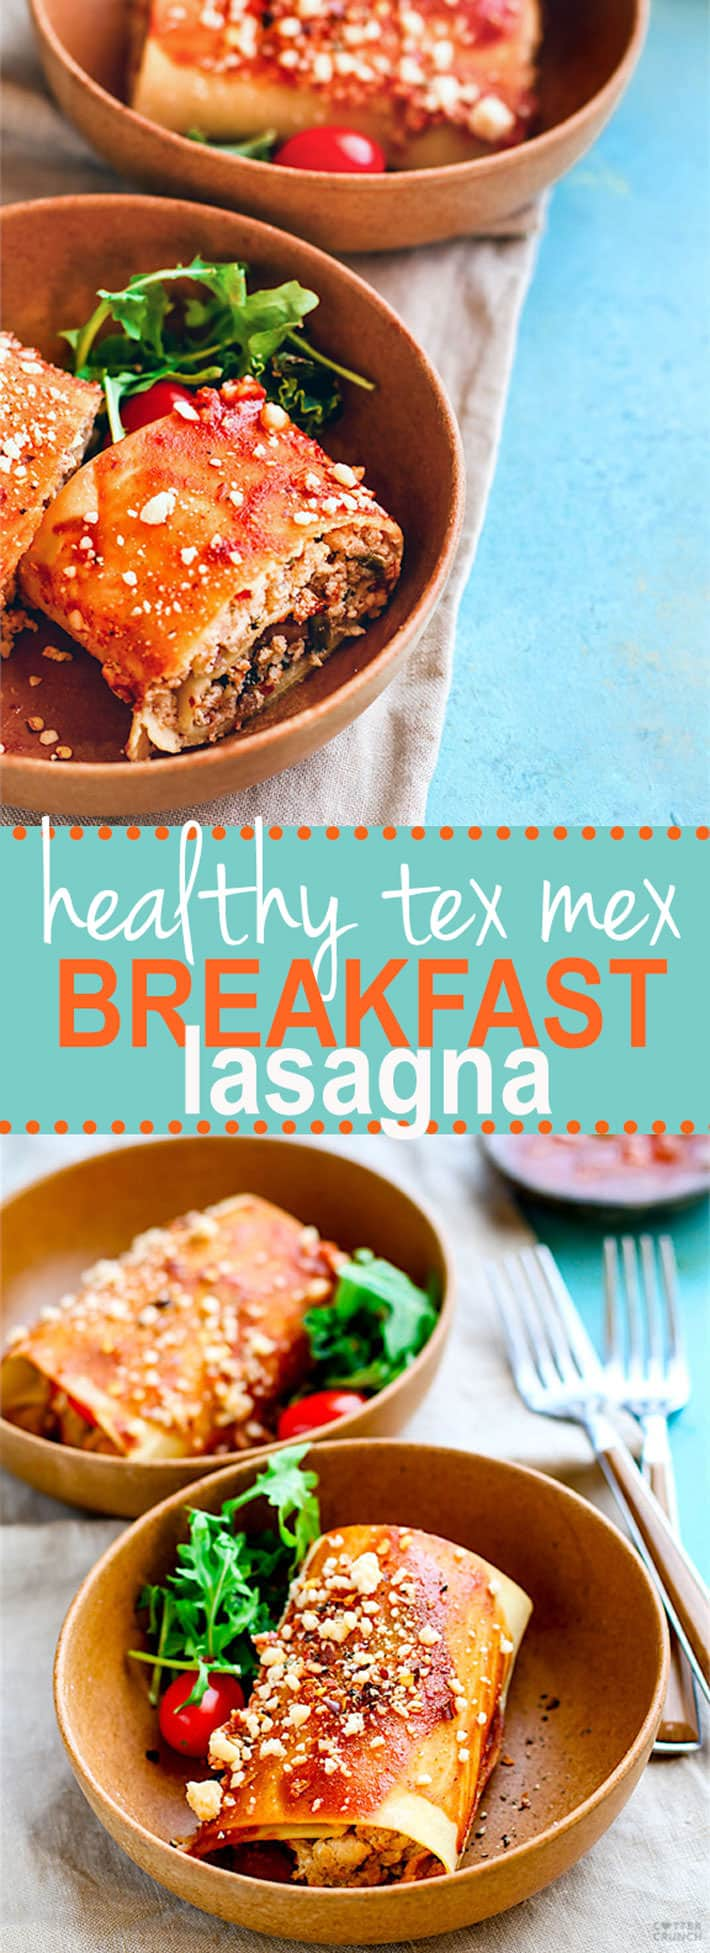 Healthy Tex Mex Breakfast Lasagna. A Gluten Free Tex Mex Breakfast Lasagna that is perfect for any meal! Easy to make, packed with protein, freezer friendly, vegetarian friendly!